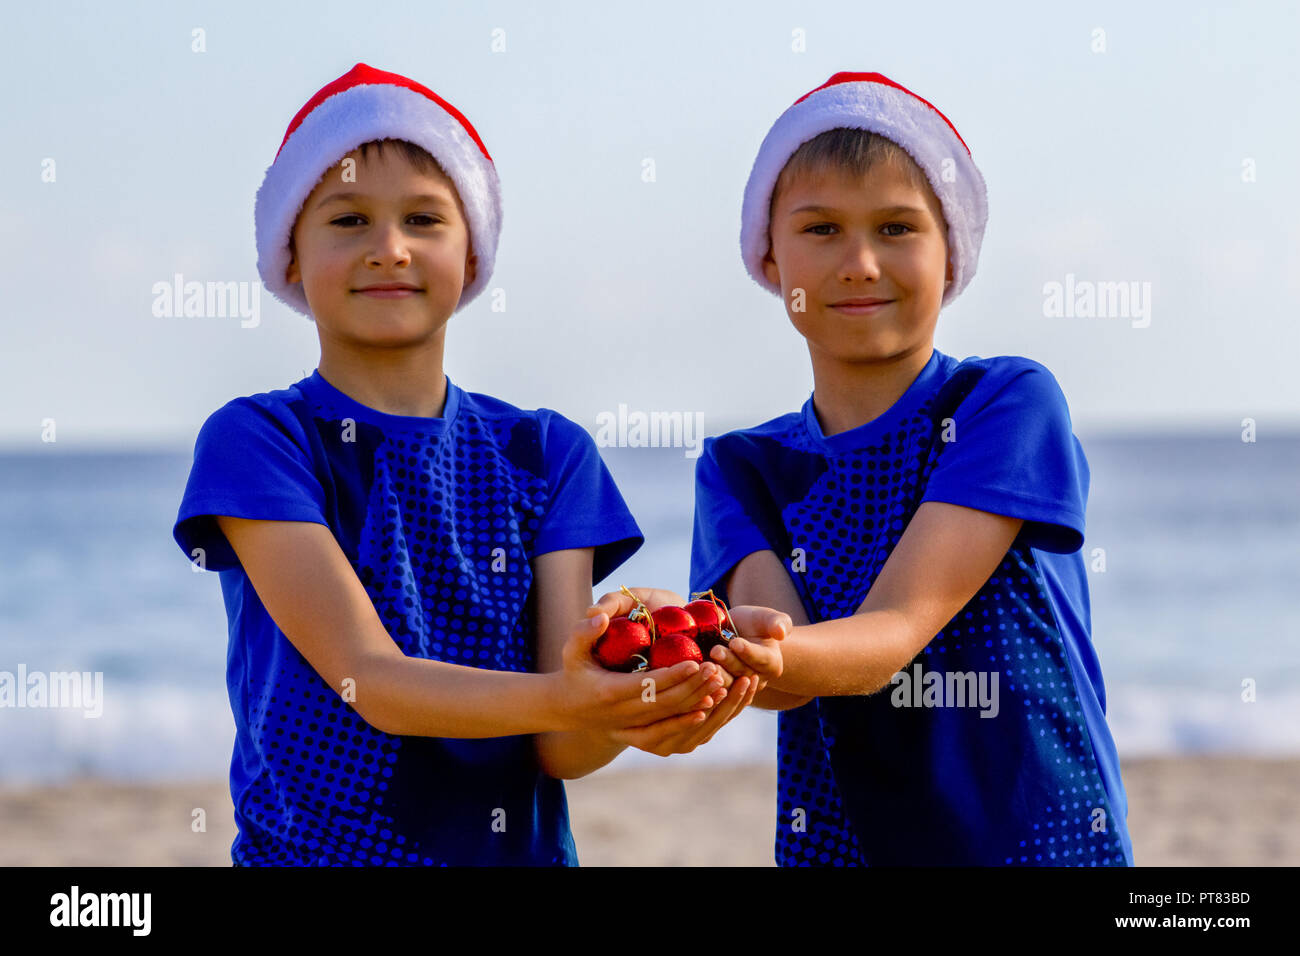 Christmas Hats For Kids.Christmas Holiday Kids In Red Santa Hats Holding Christmas